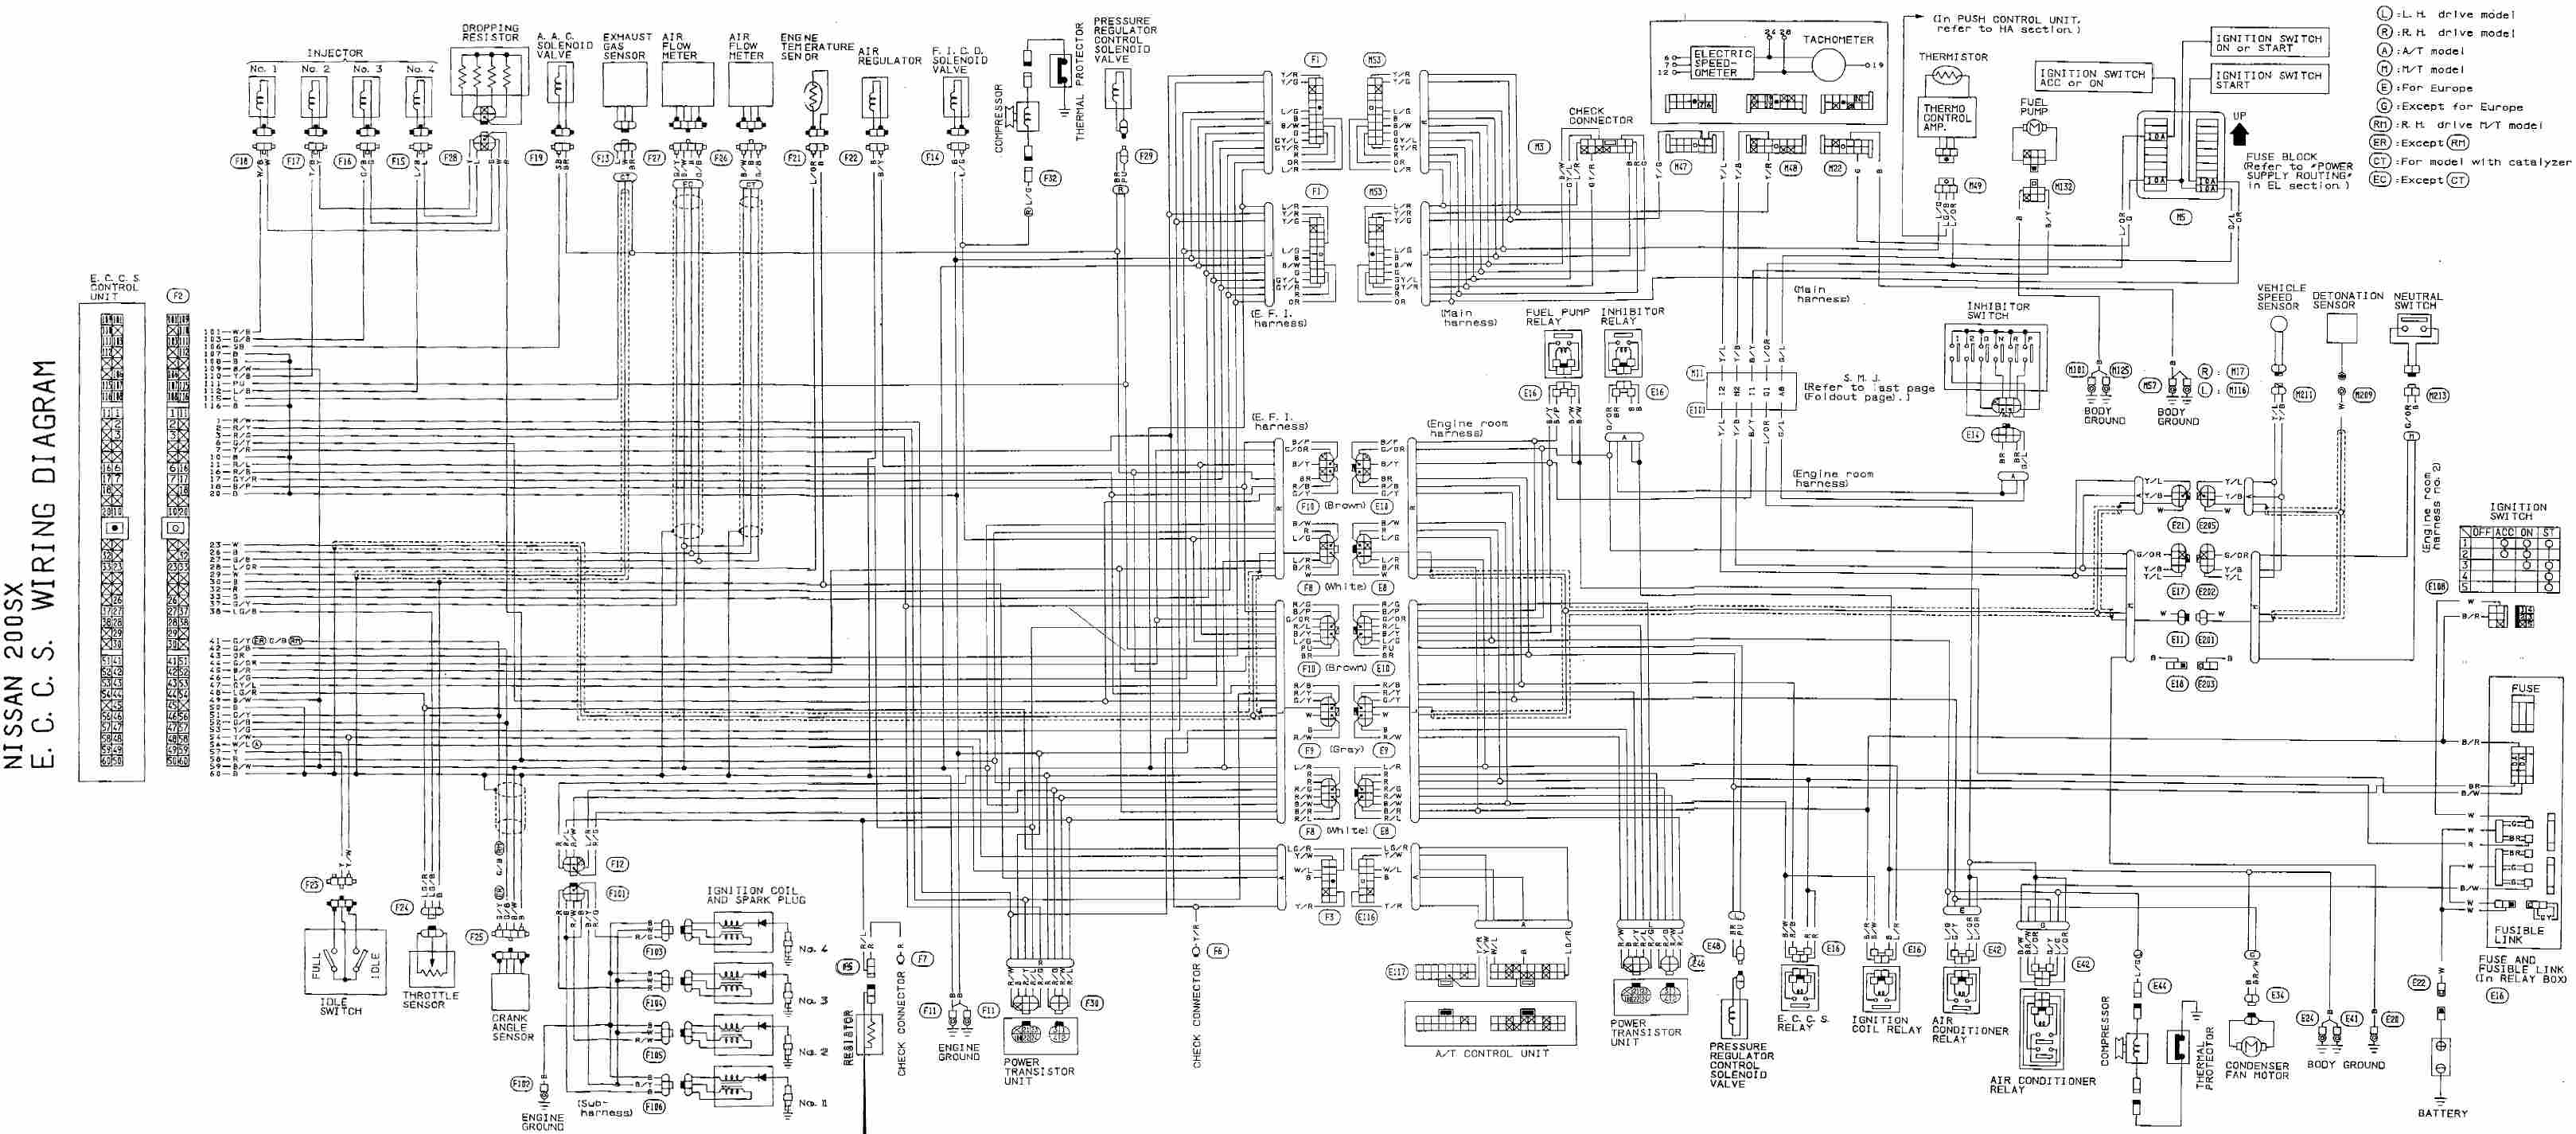 complete eccs wiring diagram of nissan 200x?t\=1508500919 300zx wiring diagram 300zx engine wiring diagram \u2022 wiring diagrams 2012 nissan sentra wiring diagrams at gsmportal.co